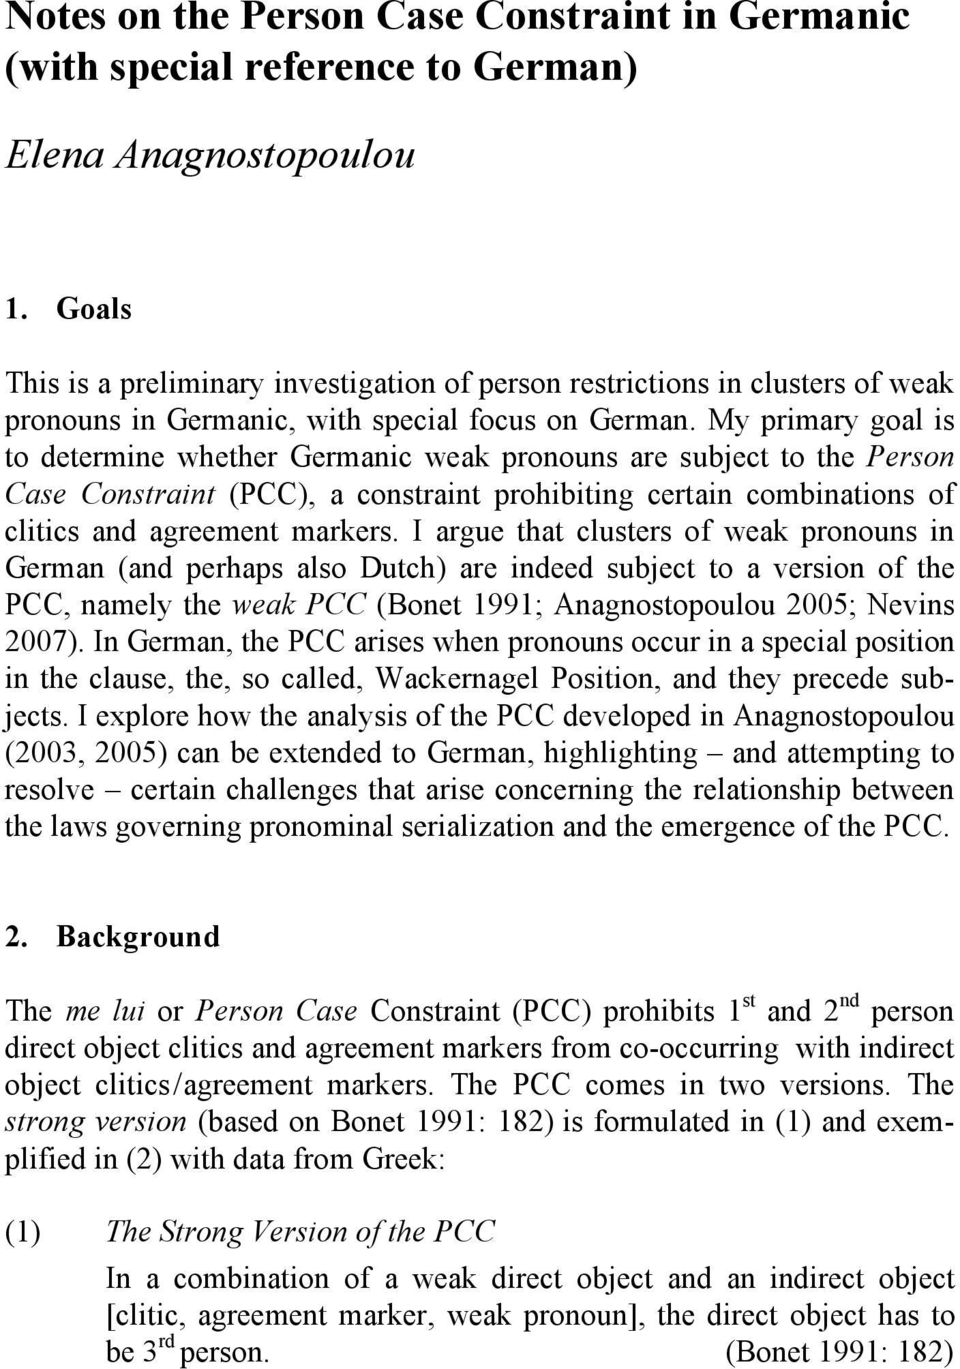 My primary goal is to determine whether Germanic weak pronouns are subject to the Person Case Constraint (PCC), a constraint prohibiting certain combinations of clitics and agreement markers.